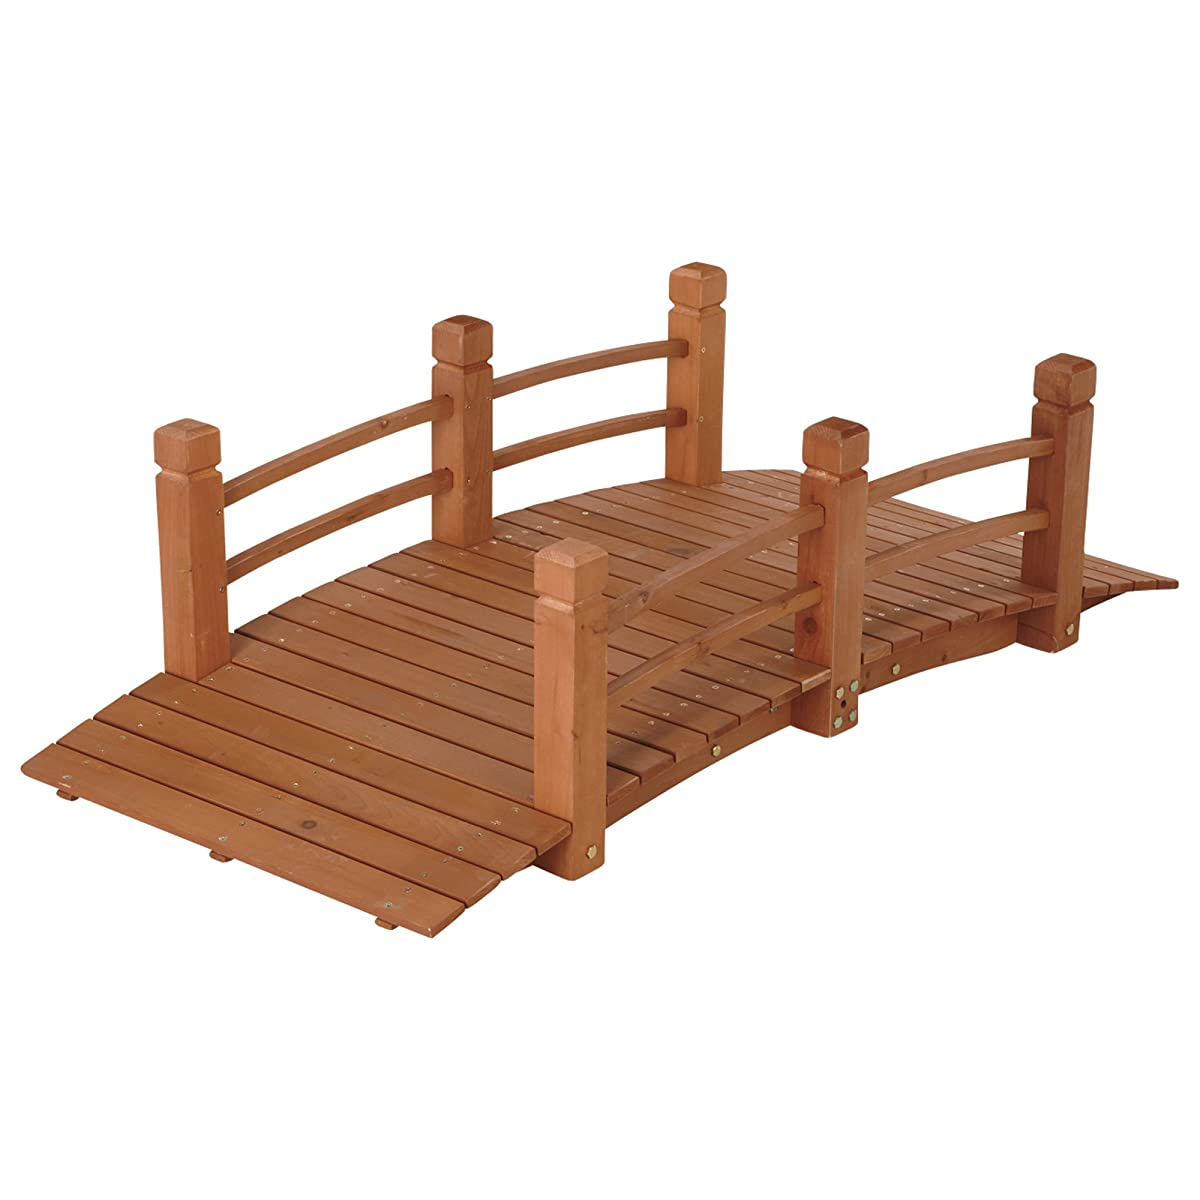 Wooden Garden Bridge, Model# KMG100858-WP